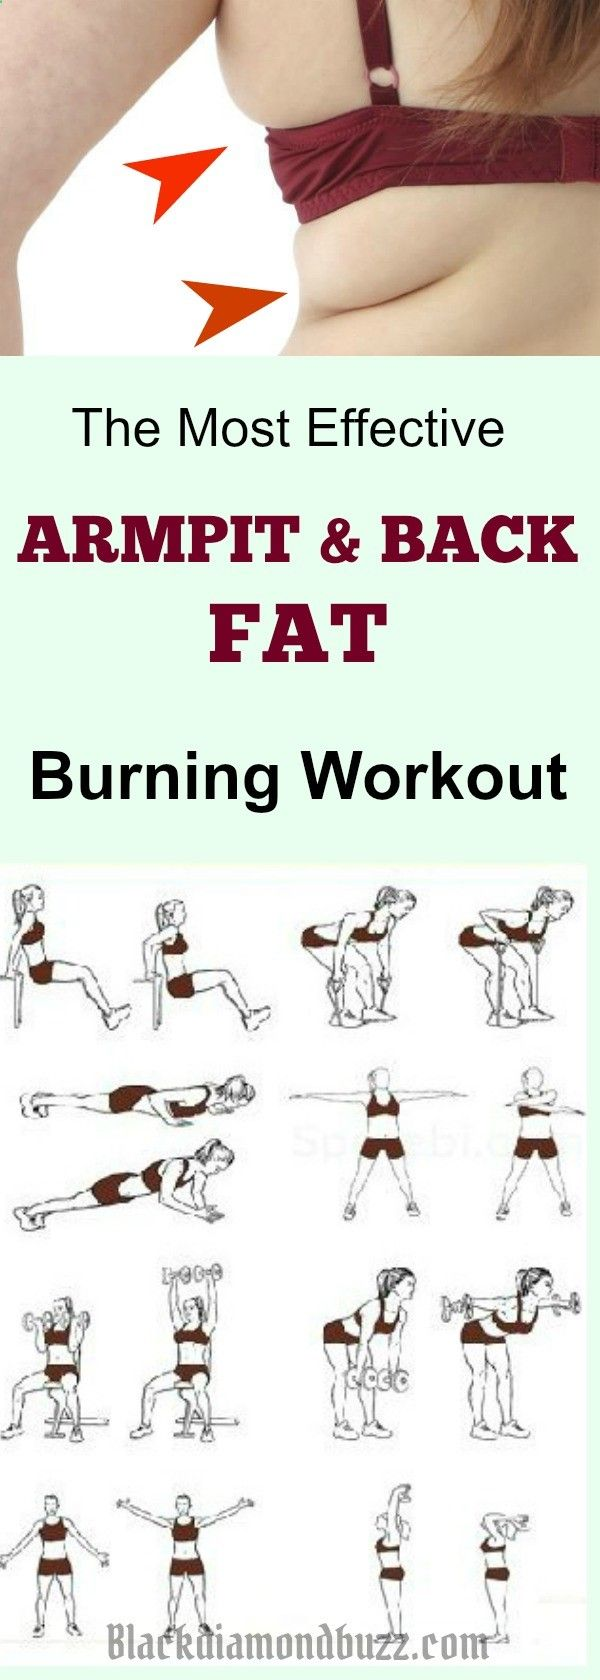 I can do this on the bowflex Best exercises for Back fat rolls and underarm fat at Home for Women : This is how you can get rid of back fat and armpit fat fast 1 week this summer .